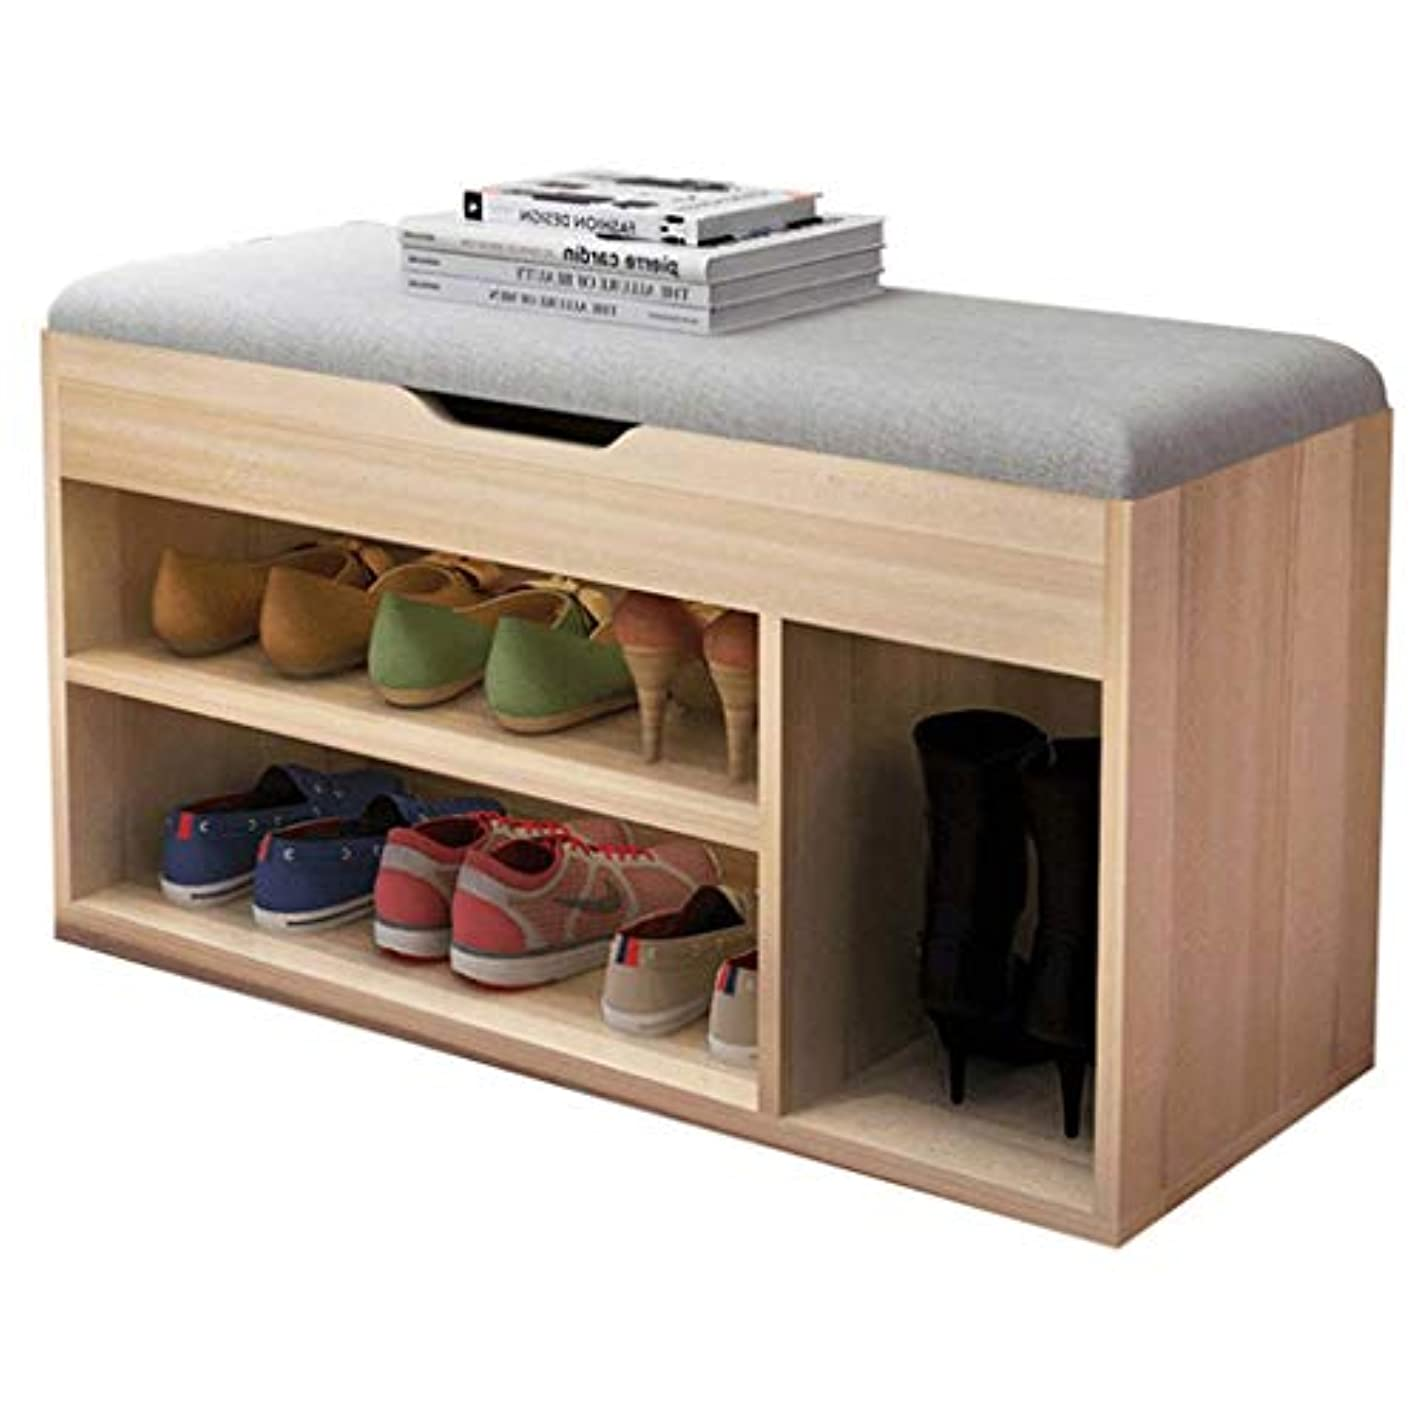 EGCLJ Entryway Ottoman Footstool - -Tier Rack for Storage Box & Shoes -Shoe Organizer,Storage Shelf,Holds Up to 150KG,Ideal for Bathroom Living Room and Corridor